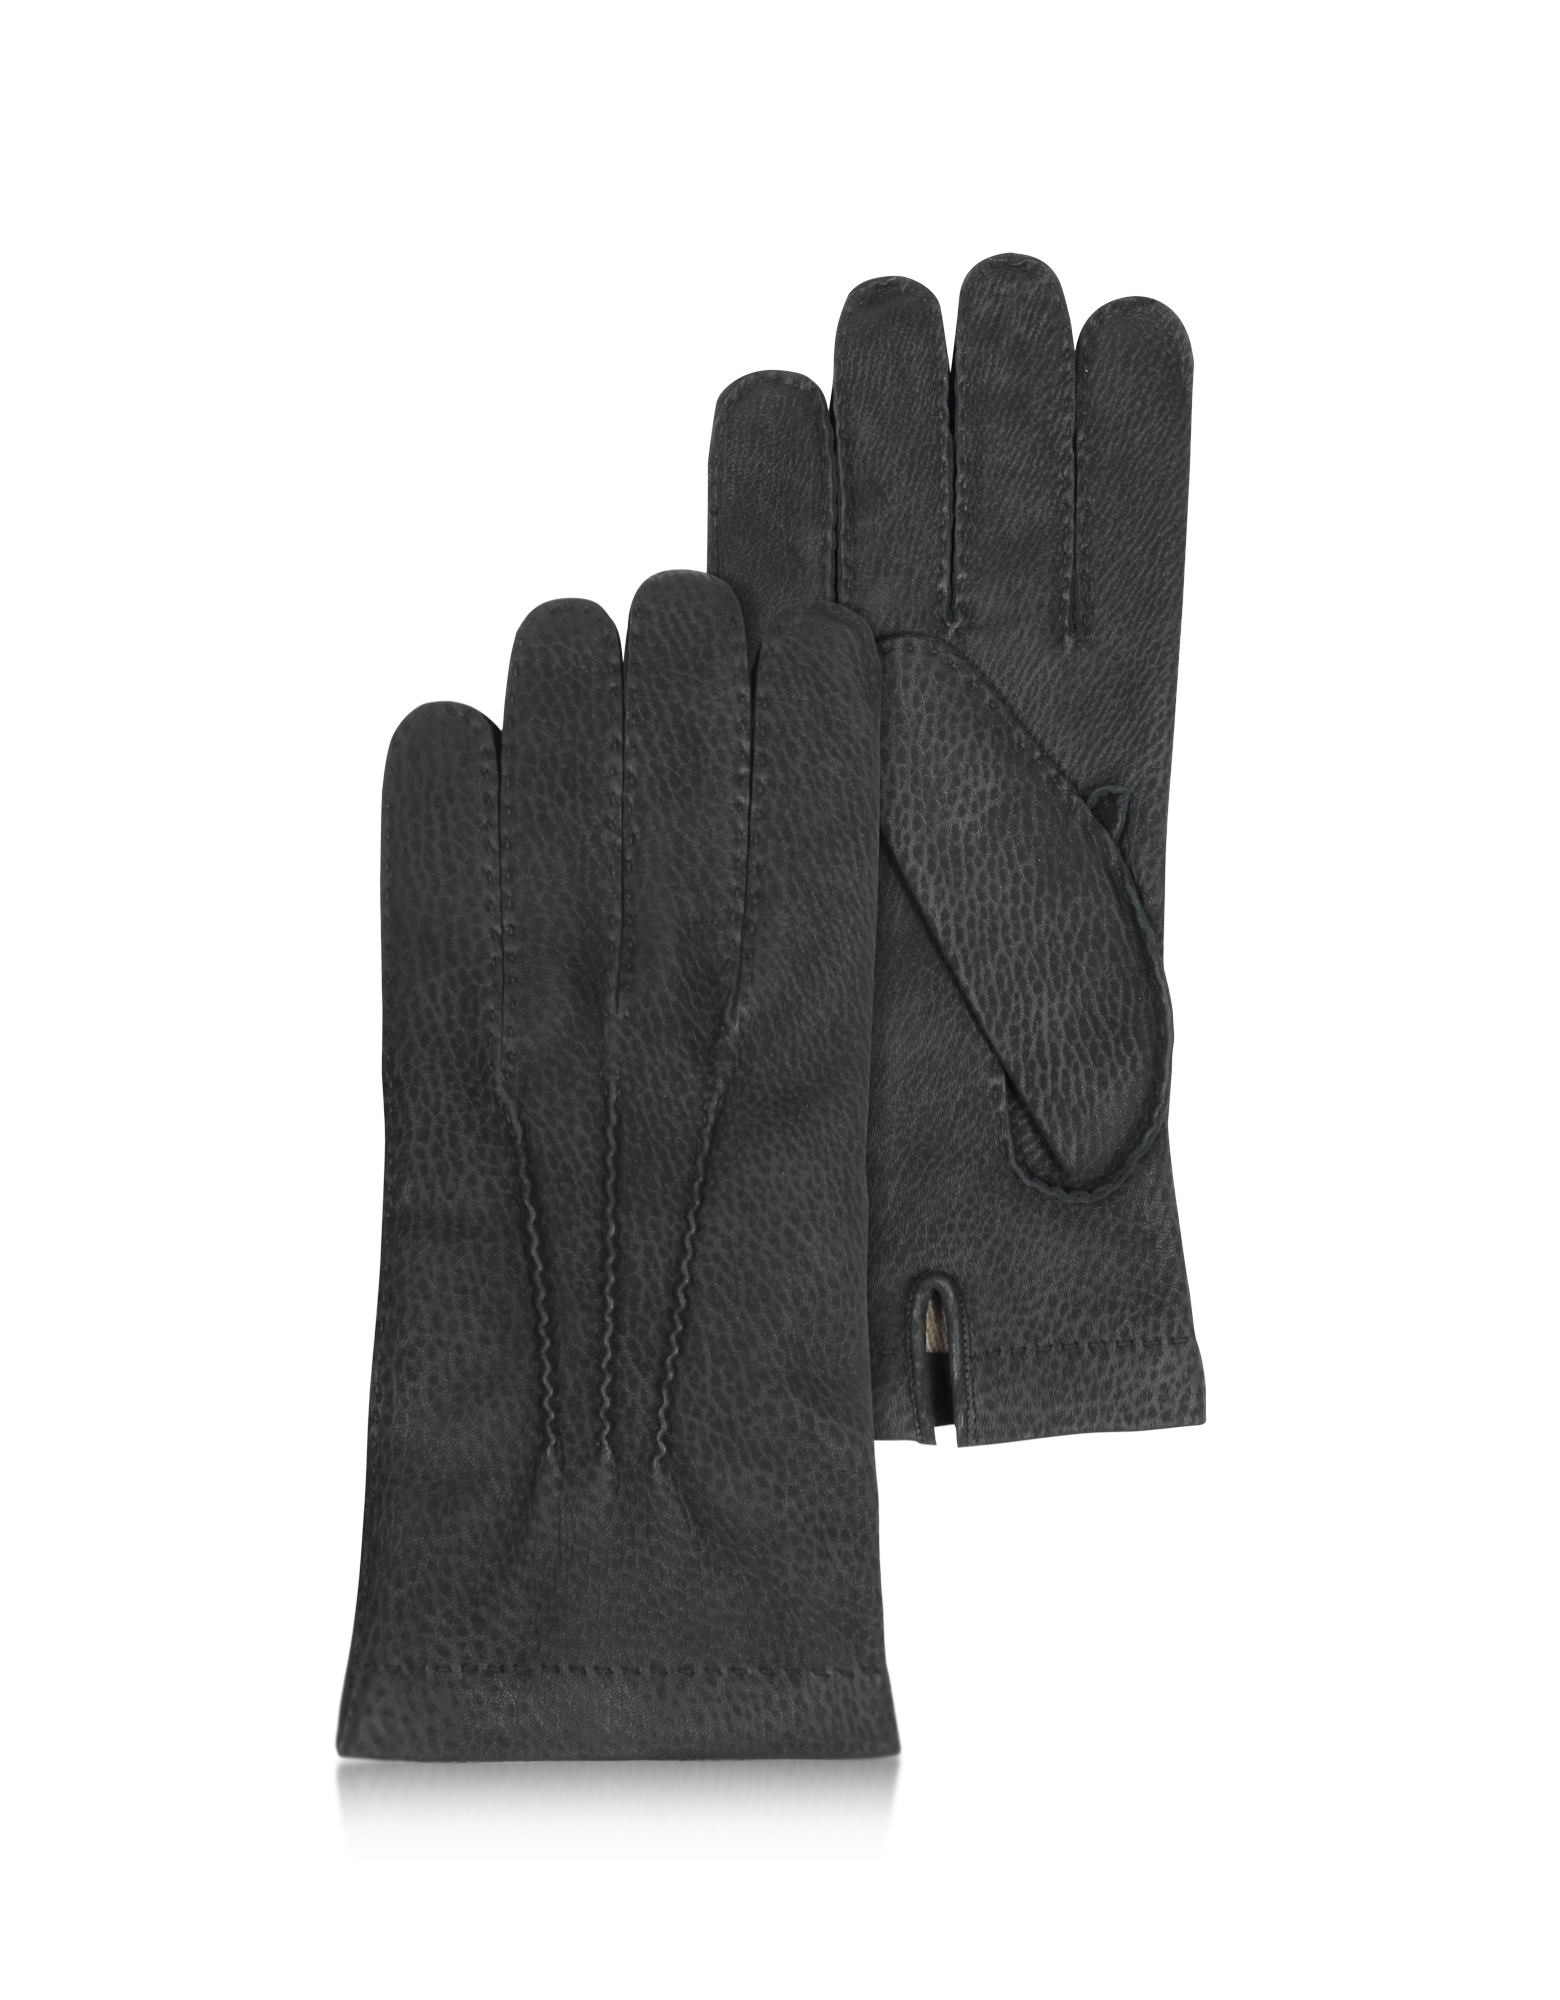 Image of Men's Cashmere Lined Black Italian Calf Leather Gloves